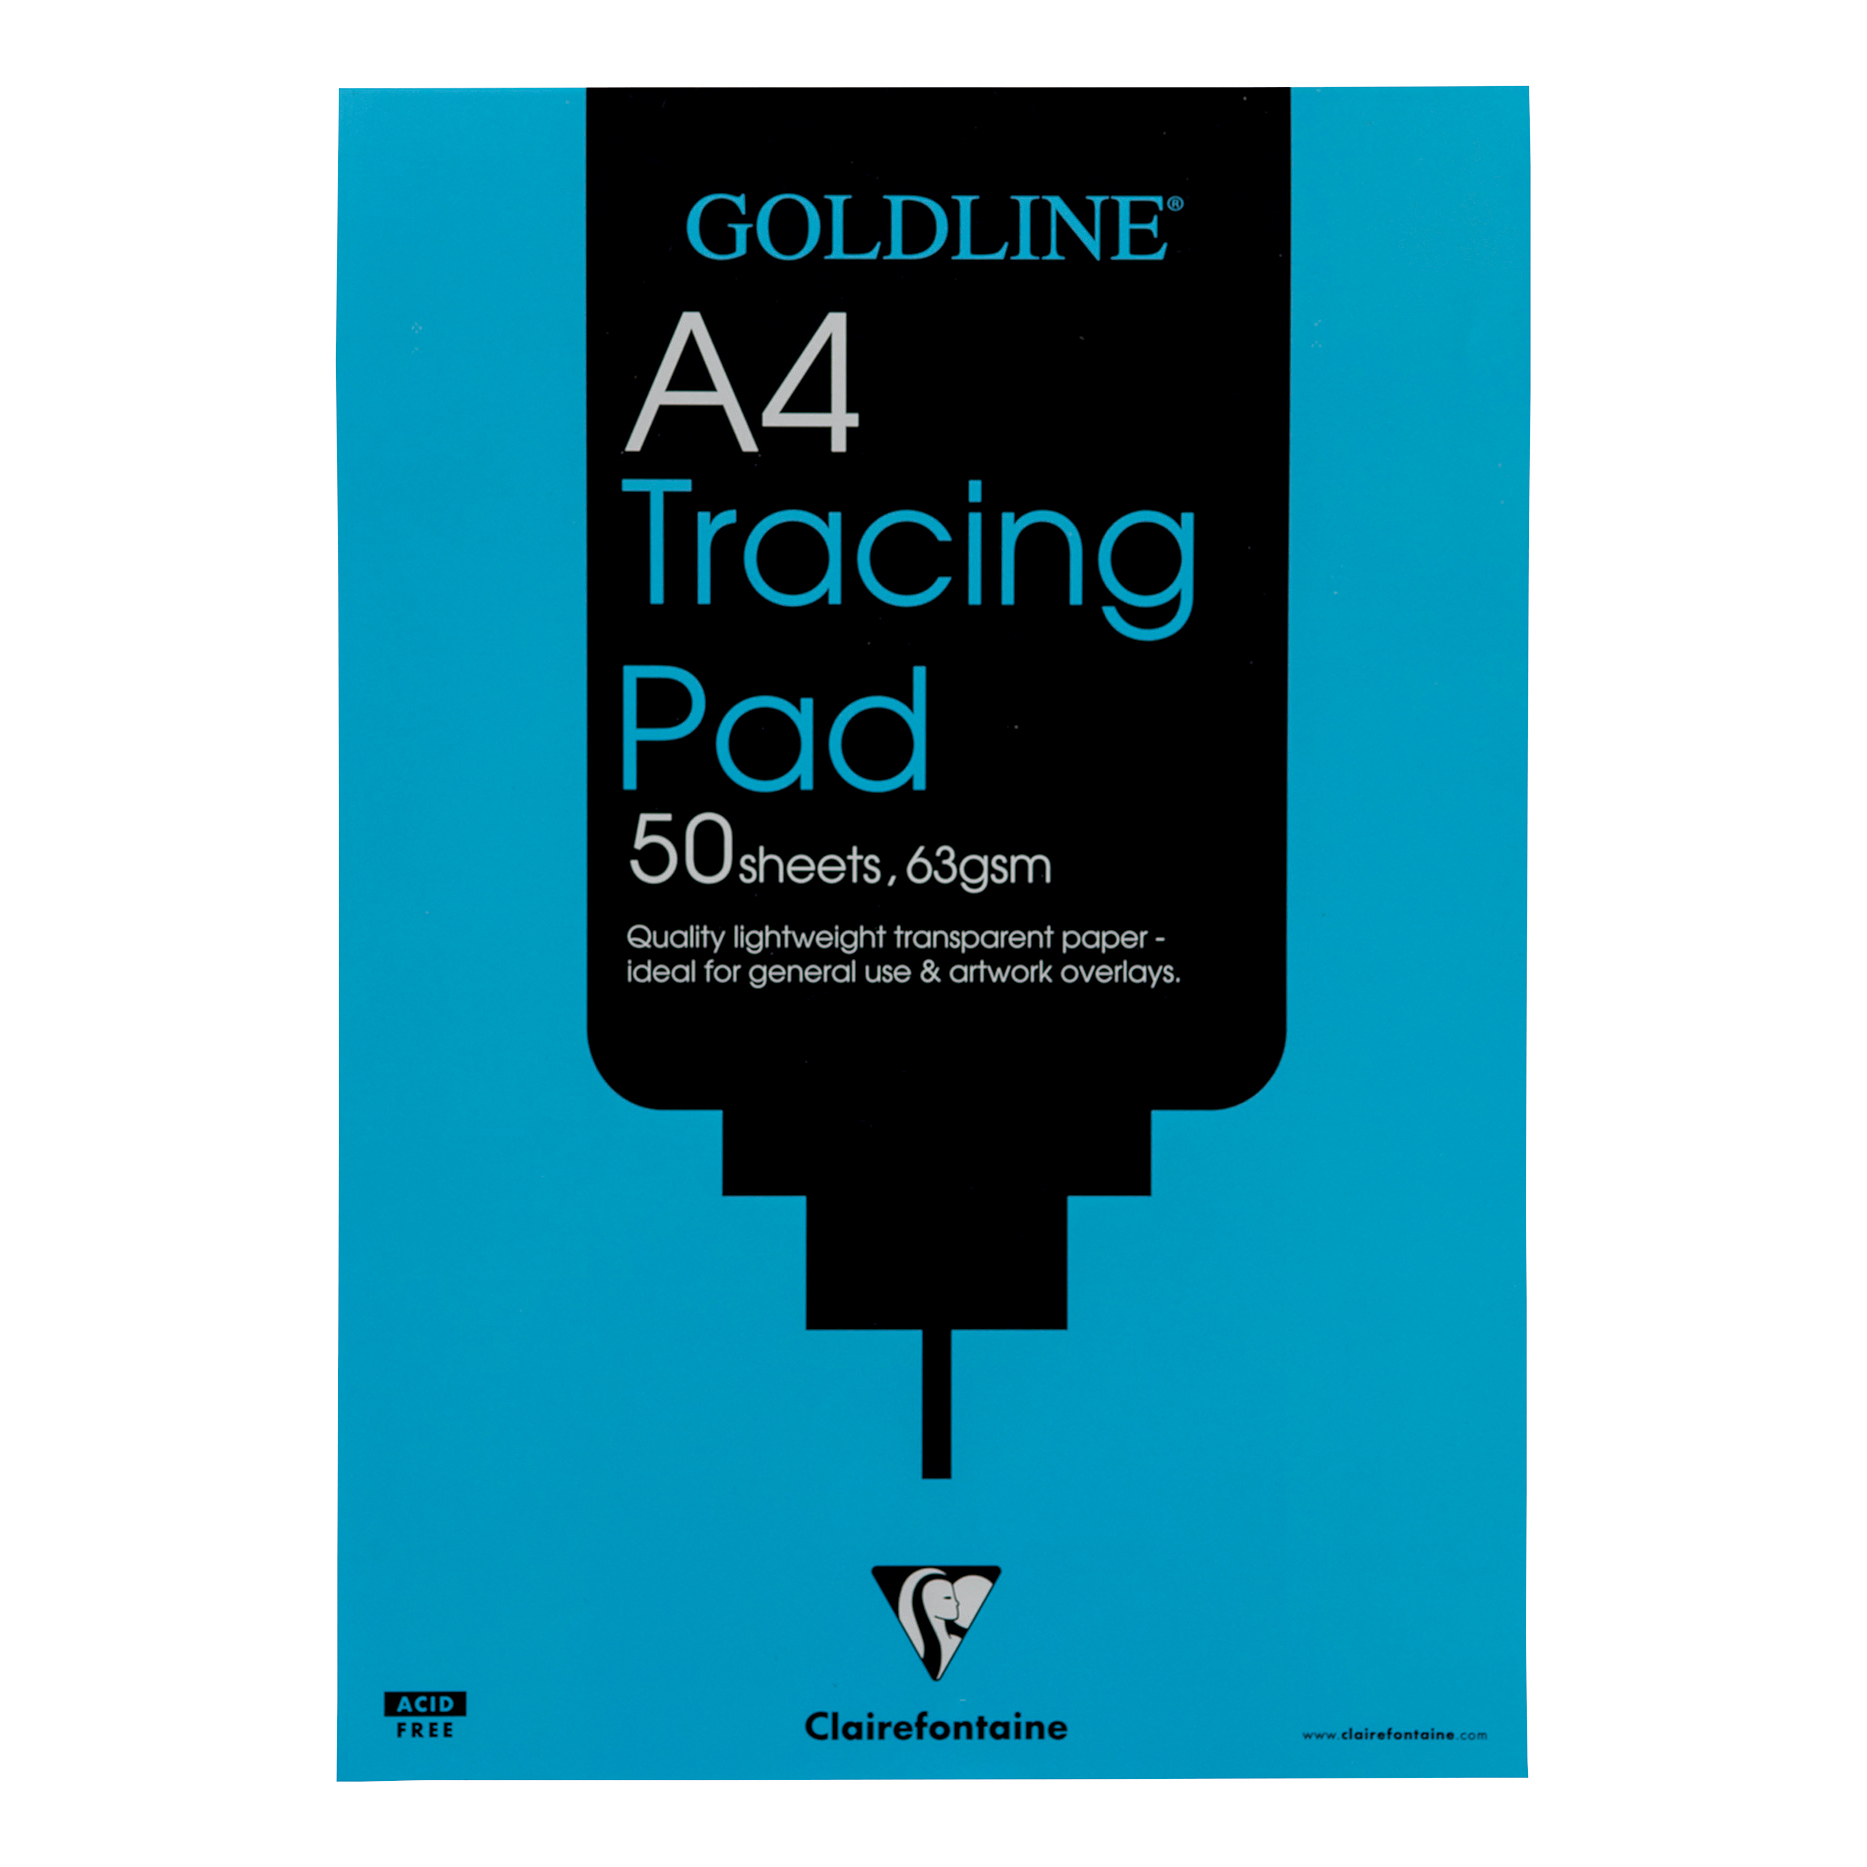 Tracing Paper Goldline Popular Tracing Pad 63gsm Acid-free Paper 50 Sheets A4 Ref GPT2A4Z Pack 5